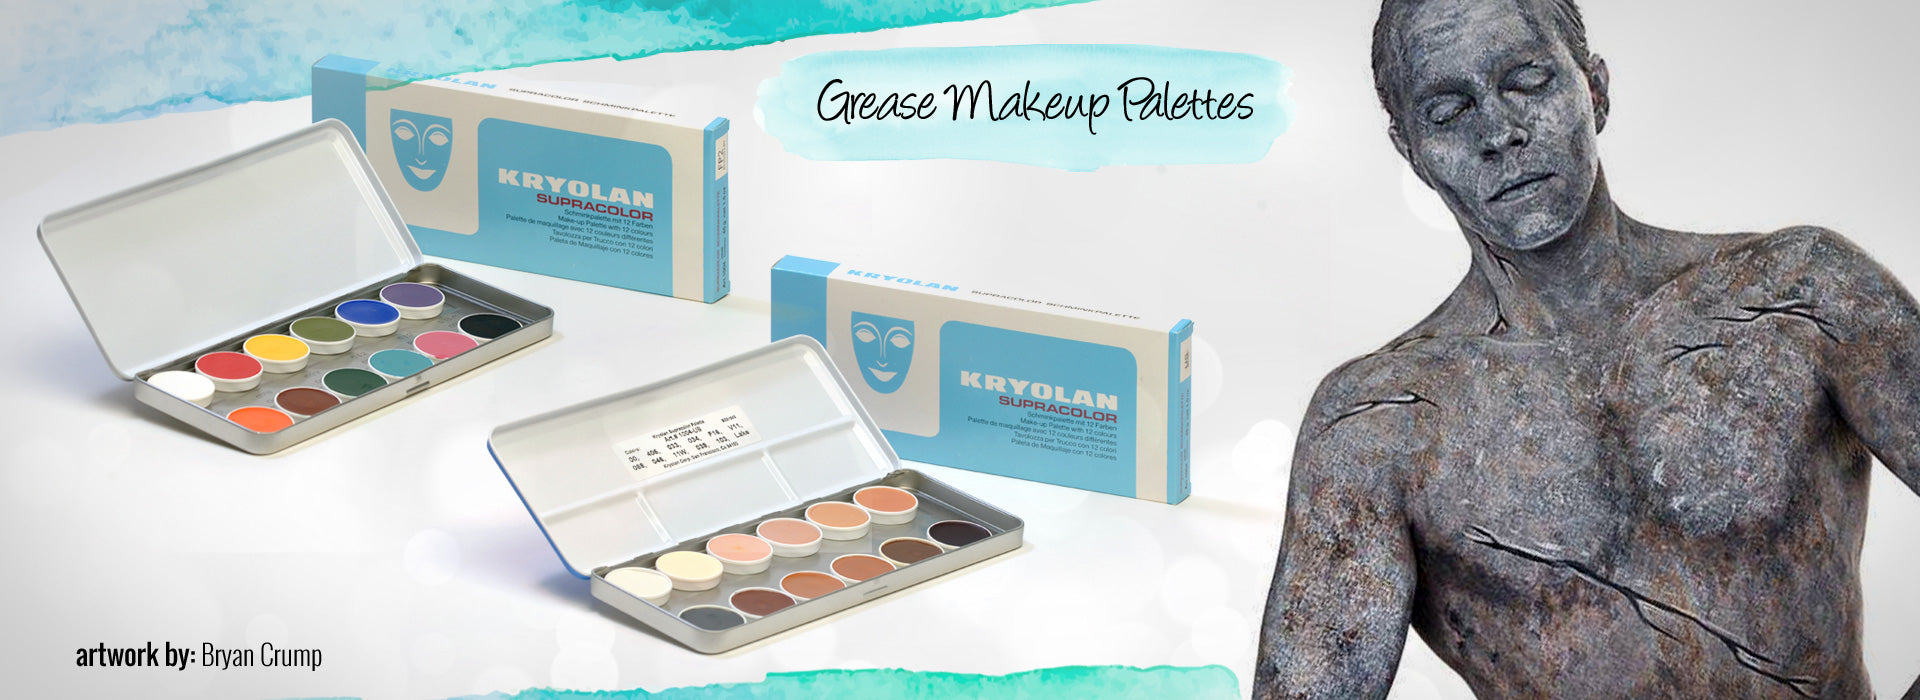 Grease Makeup Palettes